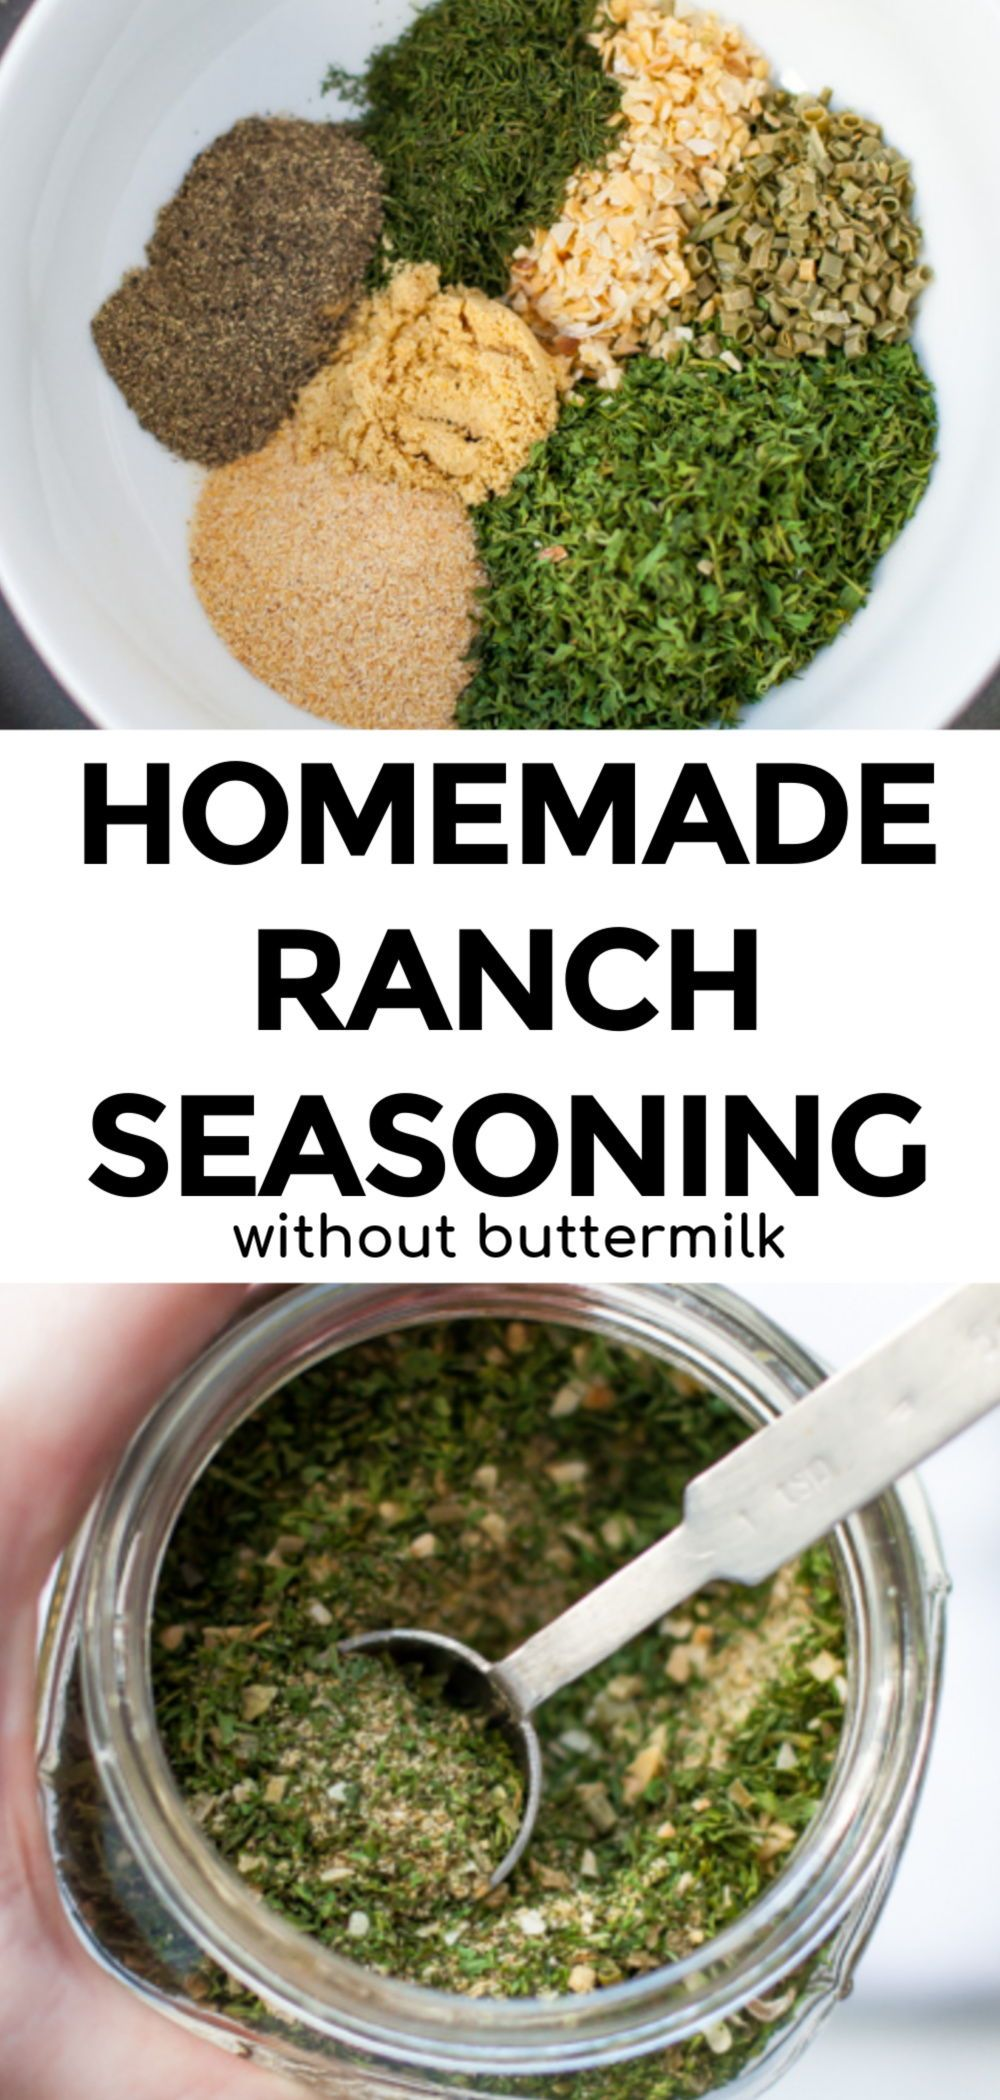 Homemade Ranch Seasoning Mix Without Buttermilk In 2020 Homemade Ranch Seasoning Homemade Ranch Ranch Seasoning Mix Recipes